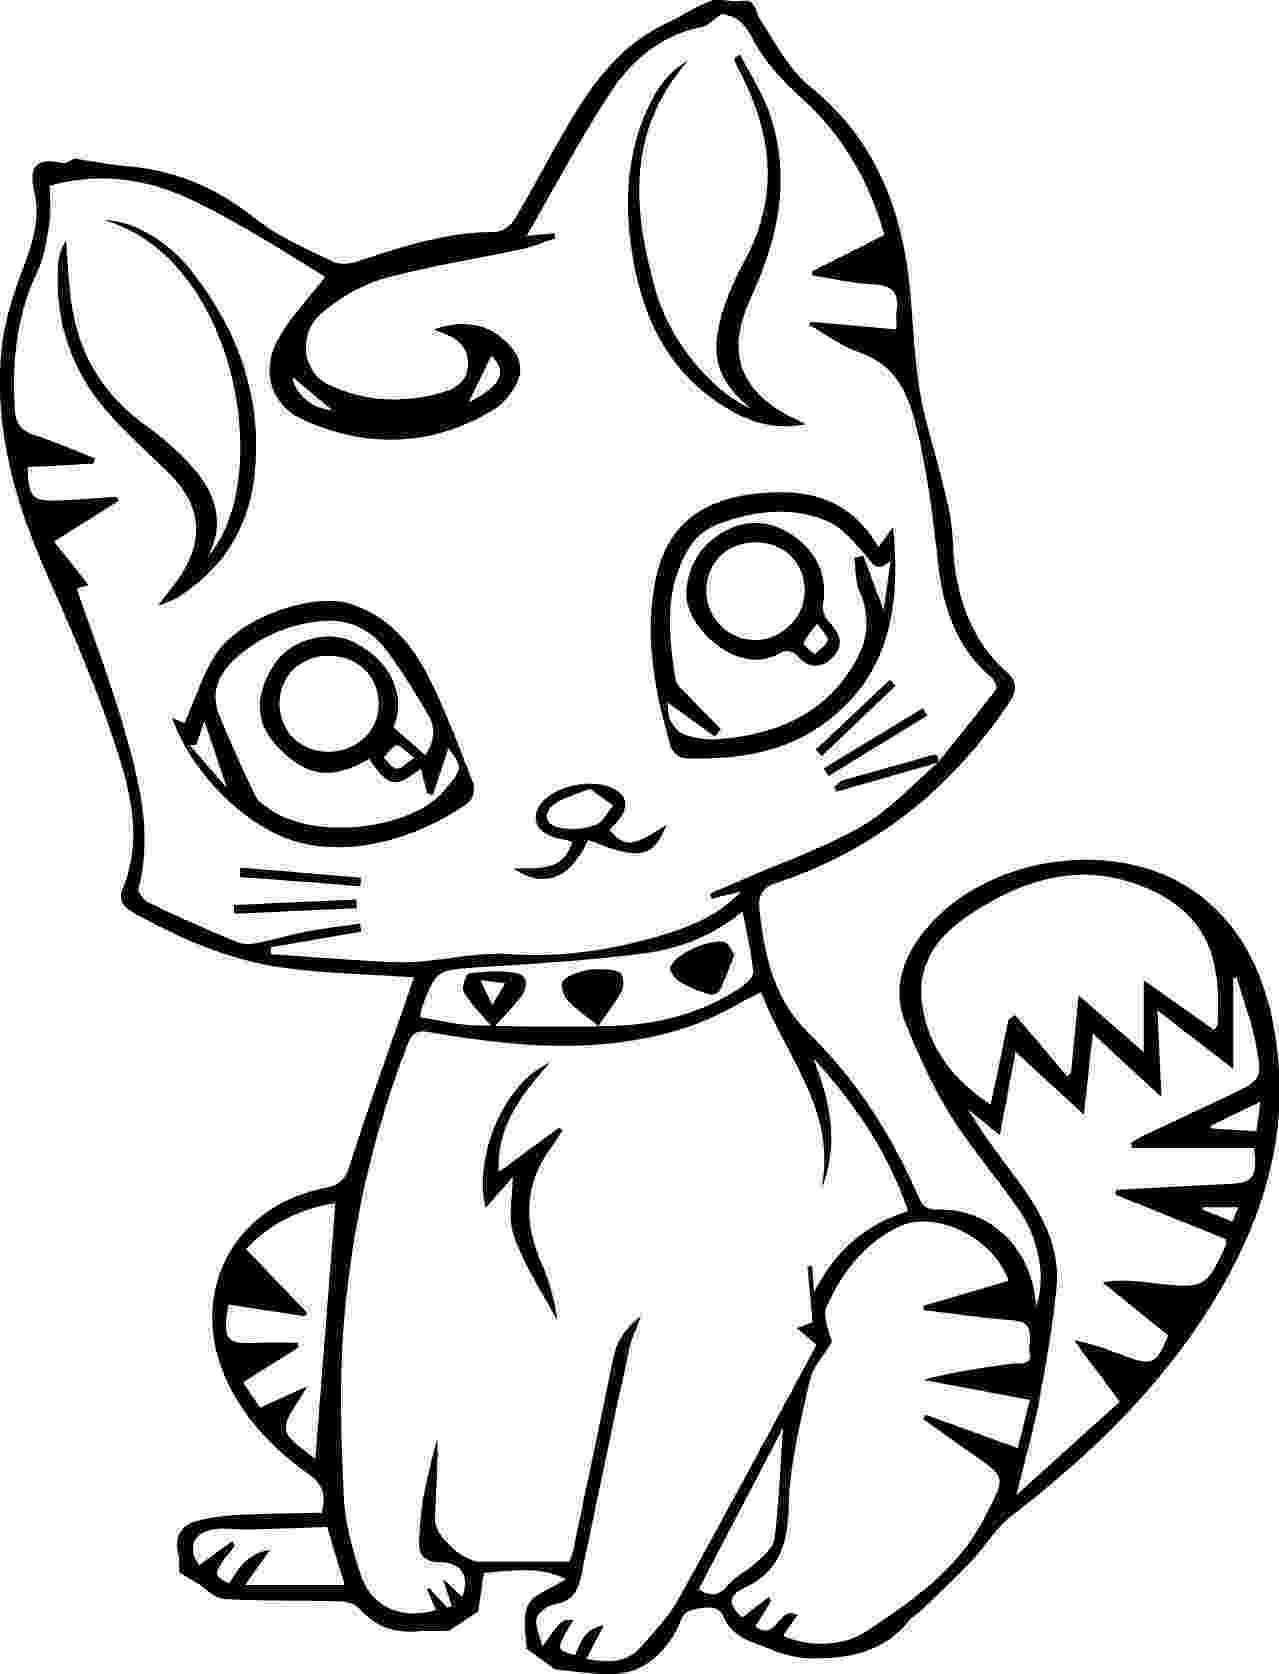 cute kitten colouring pages cute coloring pages best coloring pages for kids kitten cute colouring pages